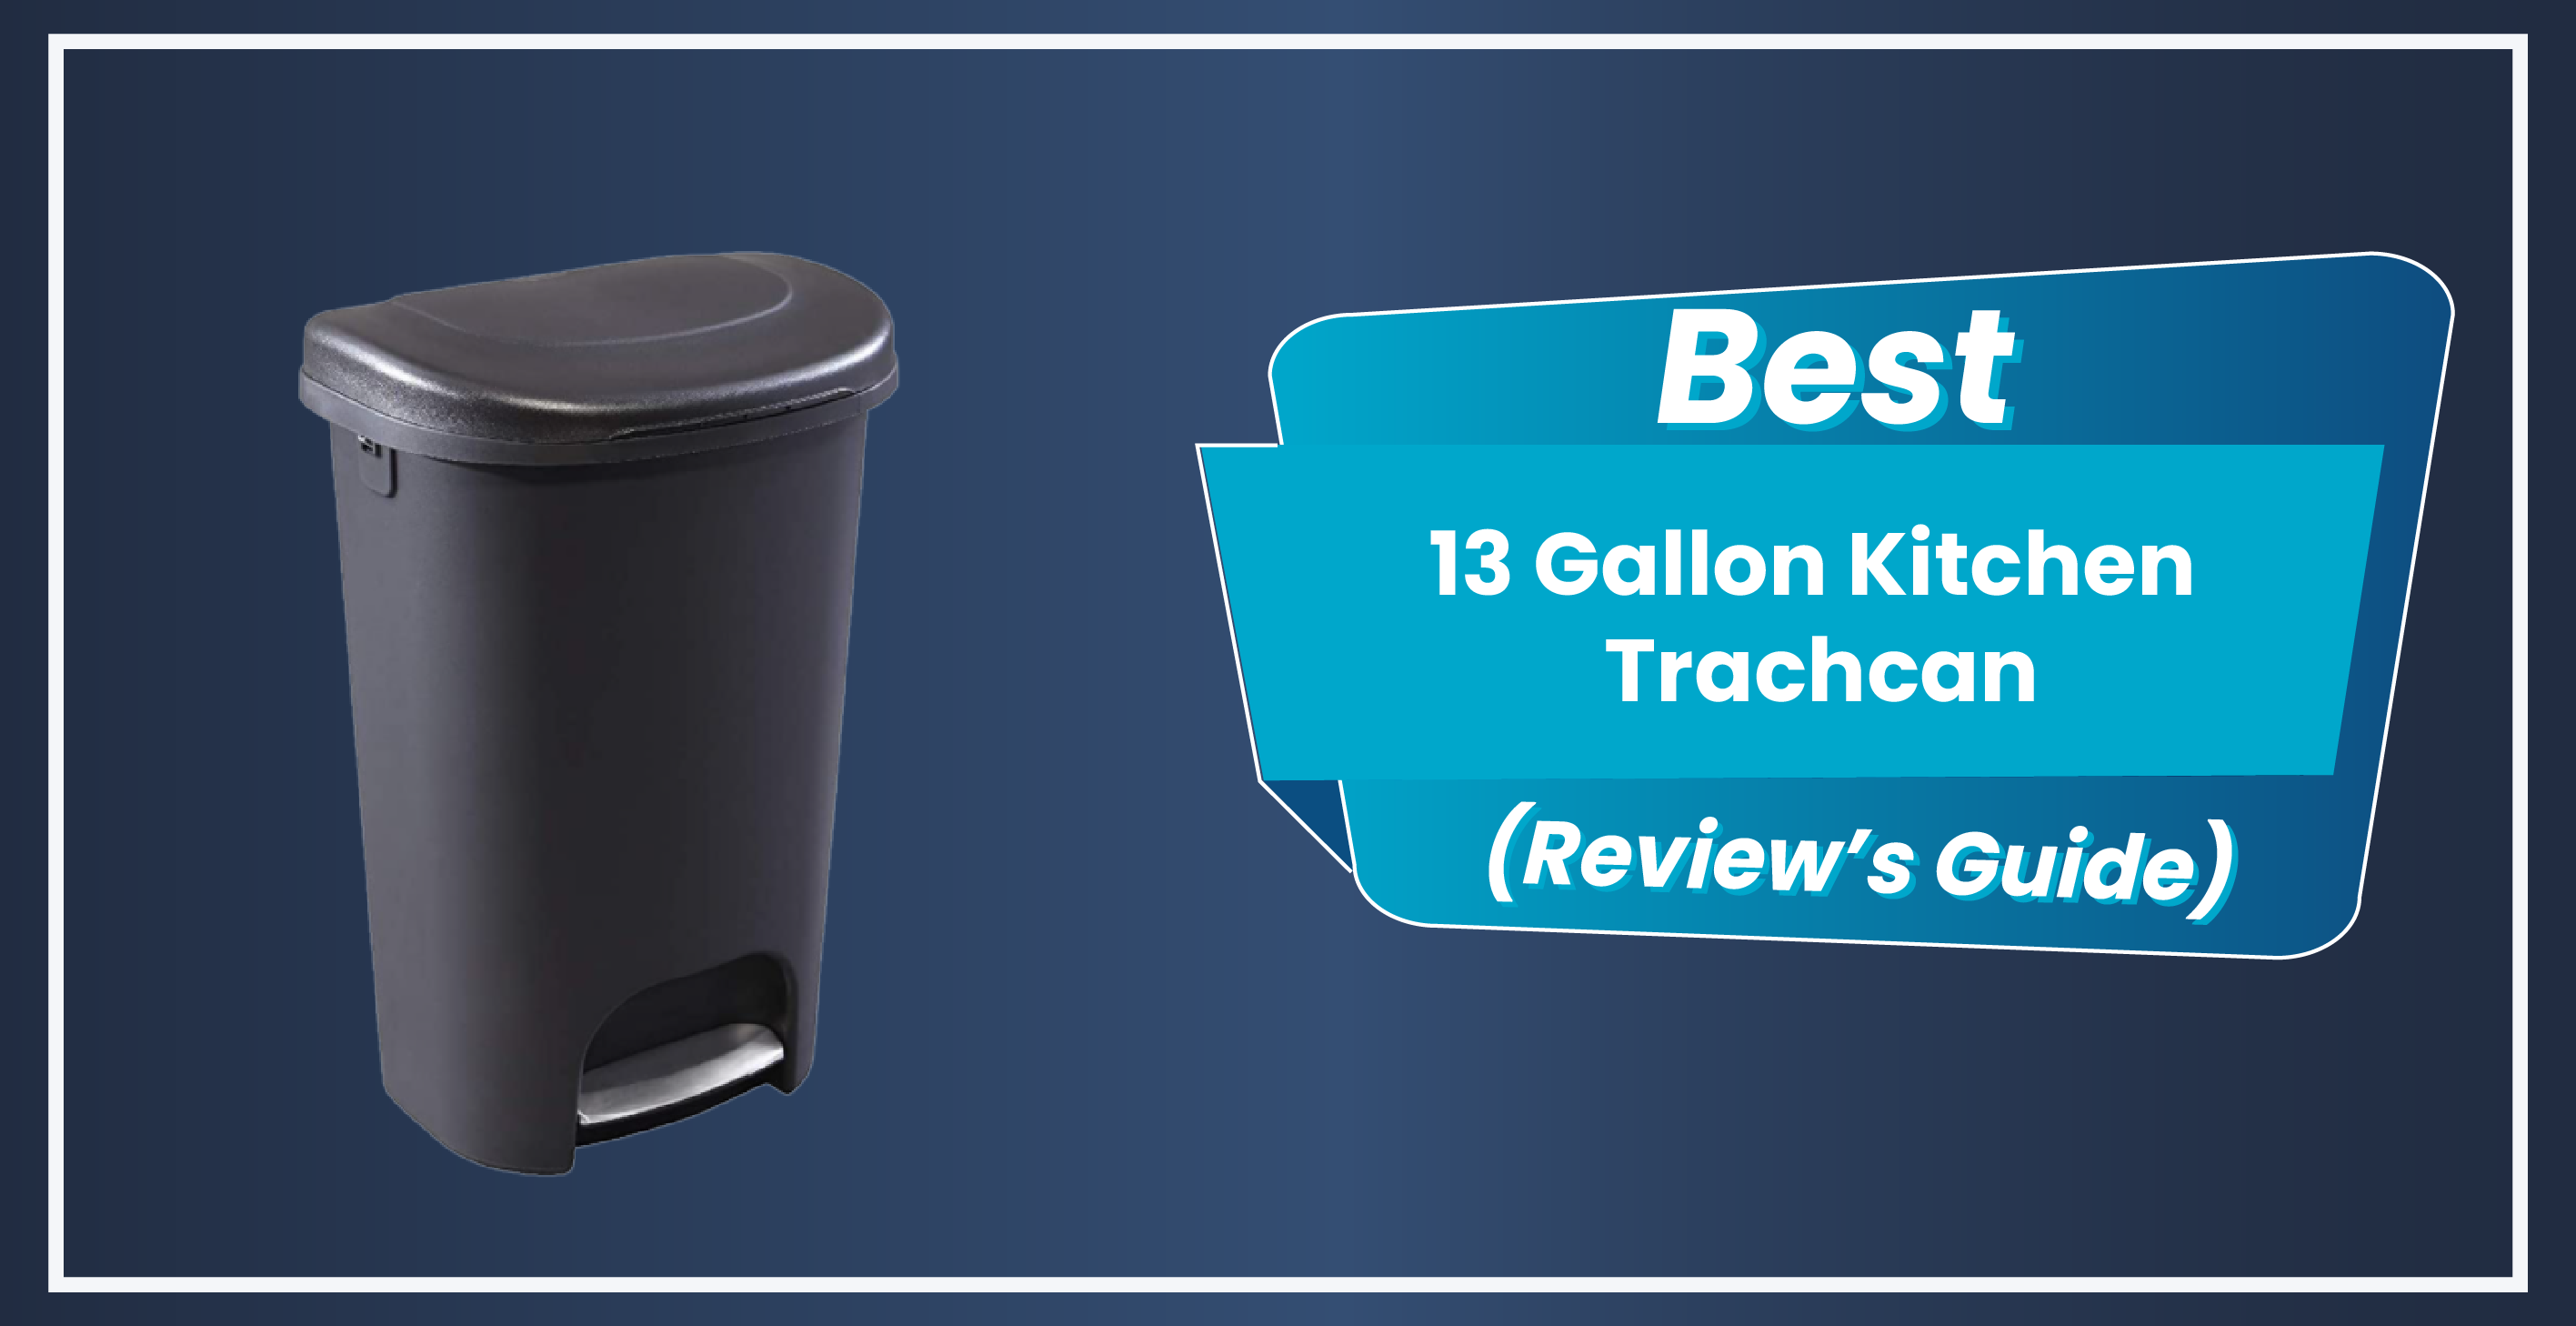 13 Gallon Kitchen Trashcan